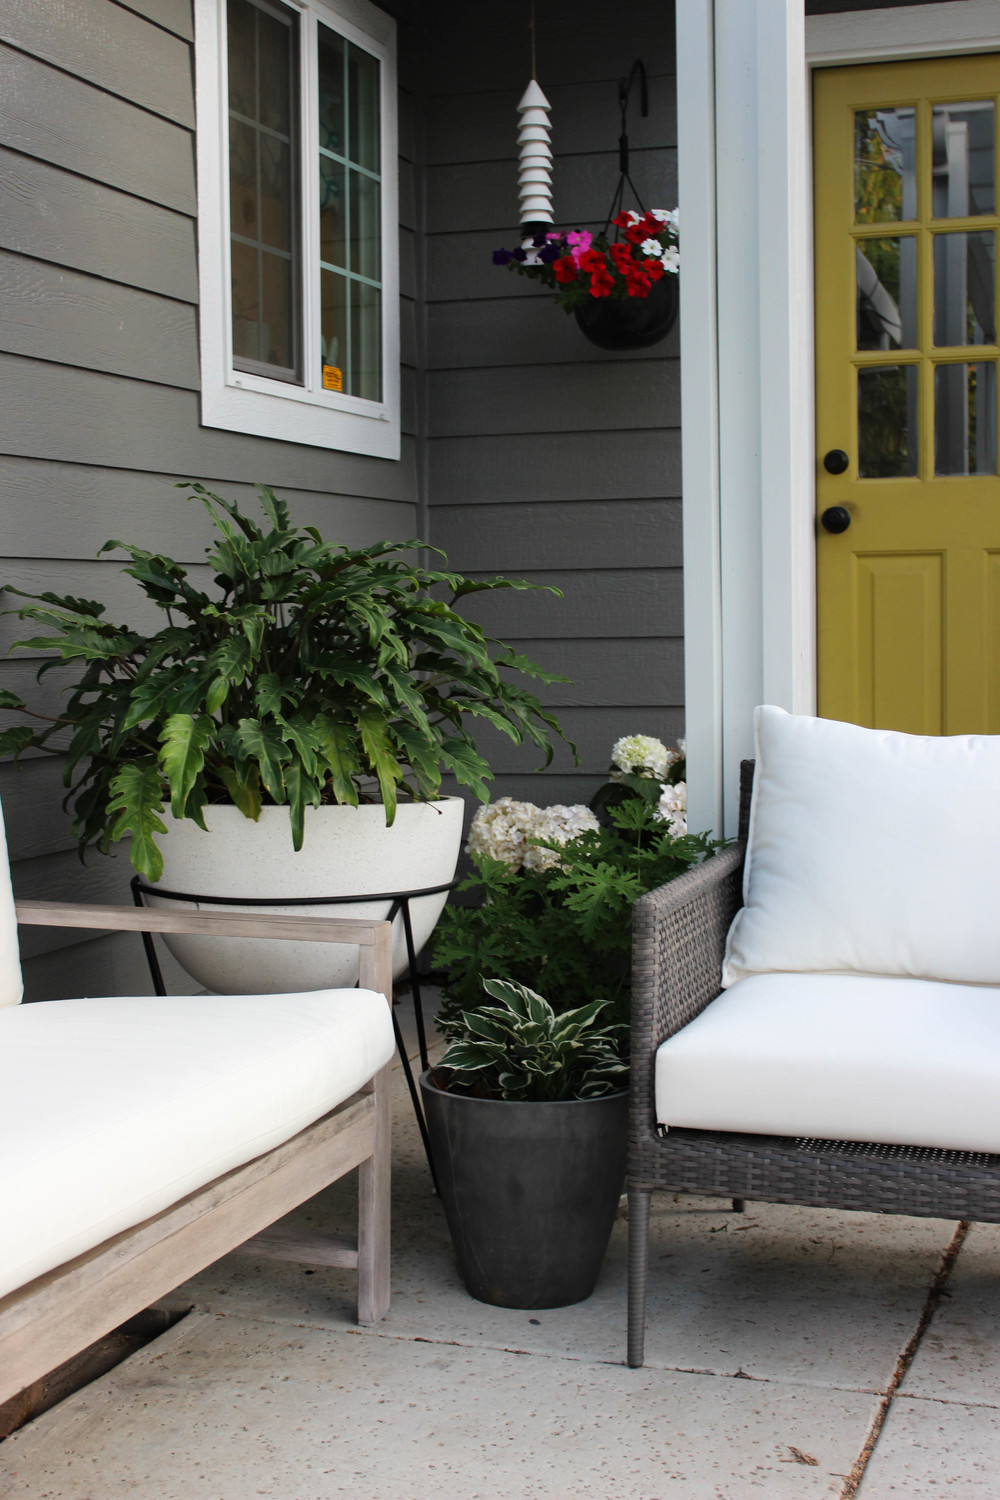 ... Patio Or Porch Is A Fun, Eclectic Way To Add Style To Your Patio. I  Also Love That You Can Easily Move Your Planters   Around Creating A Whole  New Look.